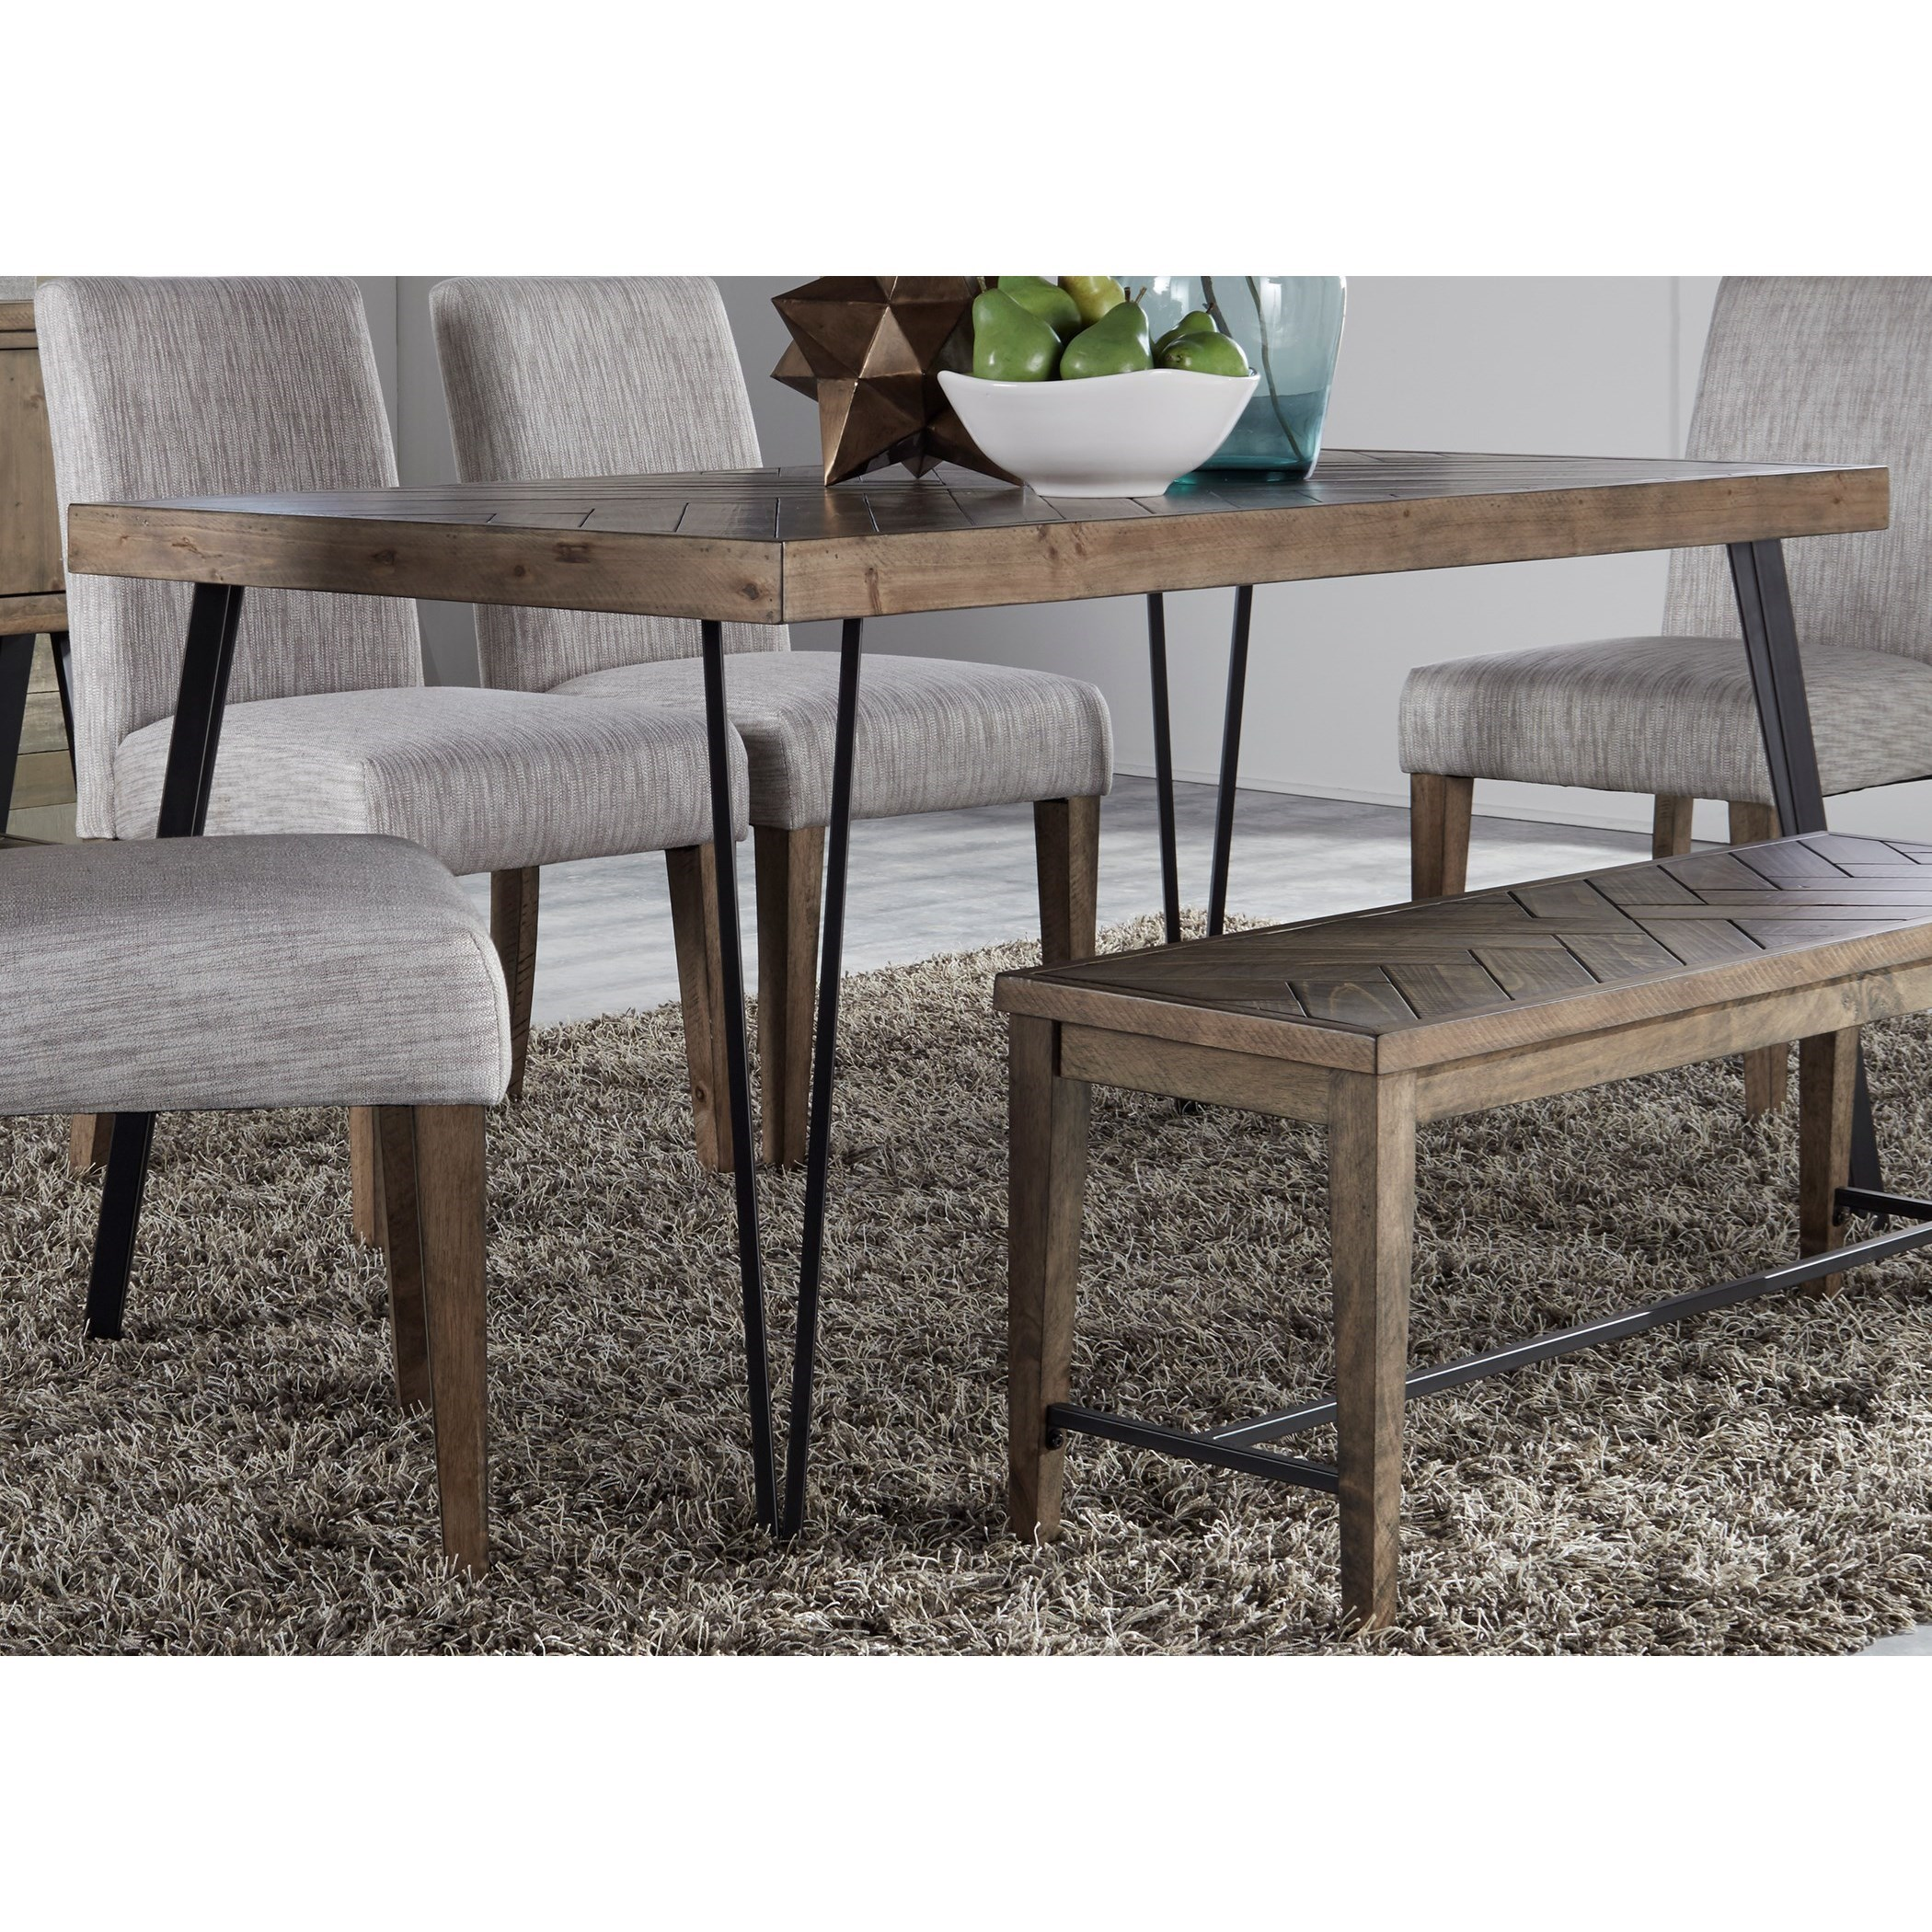 Liberty Furniture Horizons Contemporary Rectangular Leg Dining Table With Angled Metal Tube Legs Royal Furniture Dining Tables